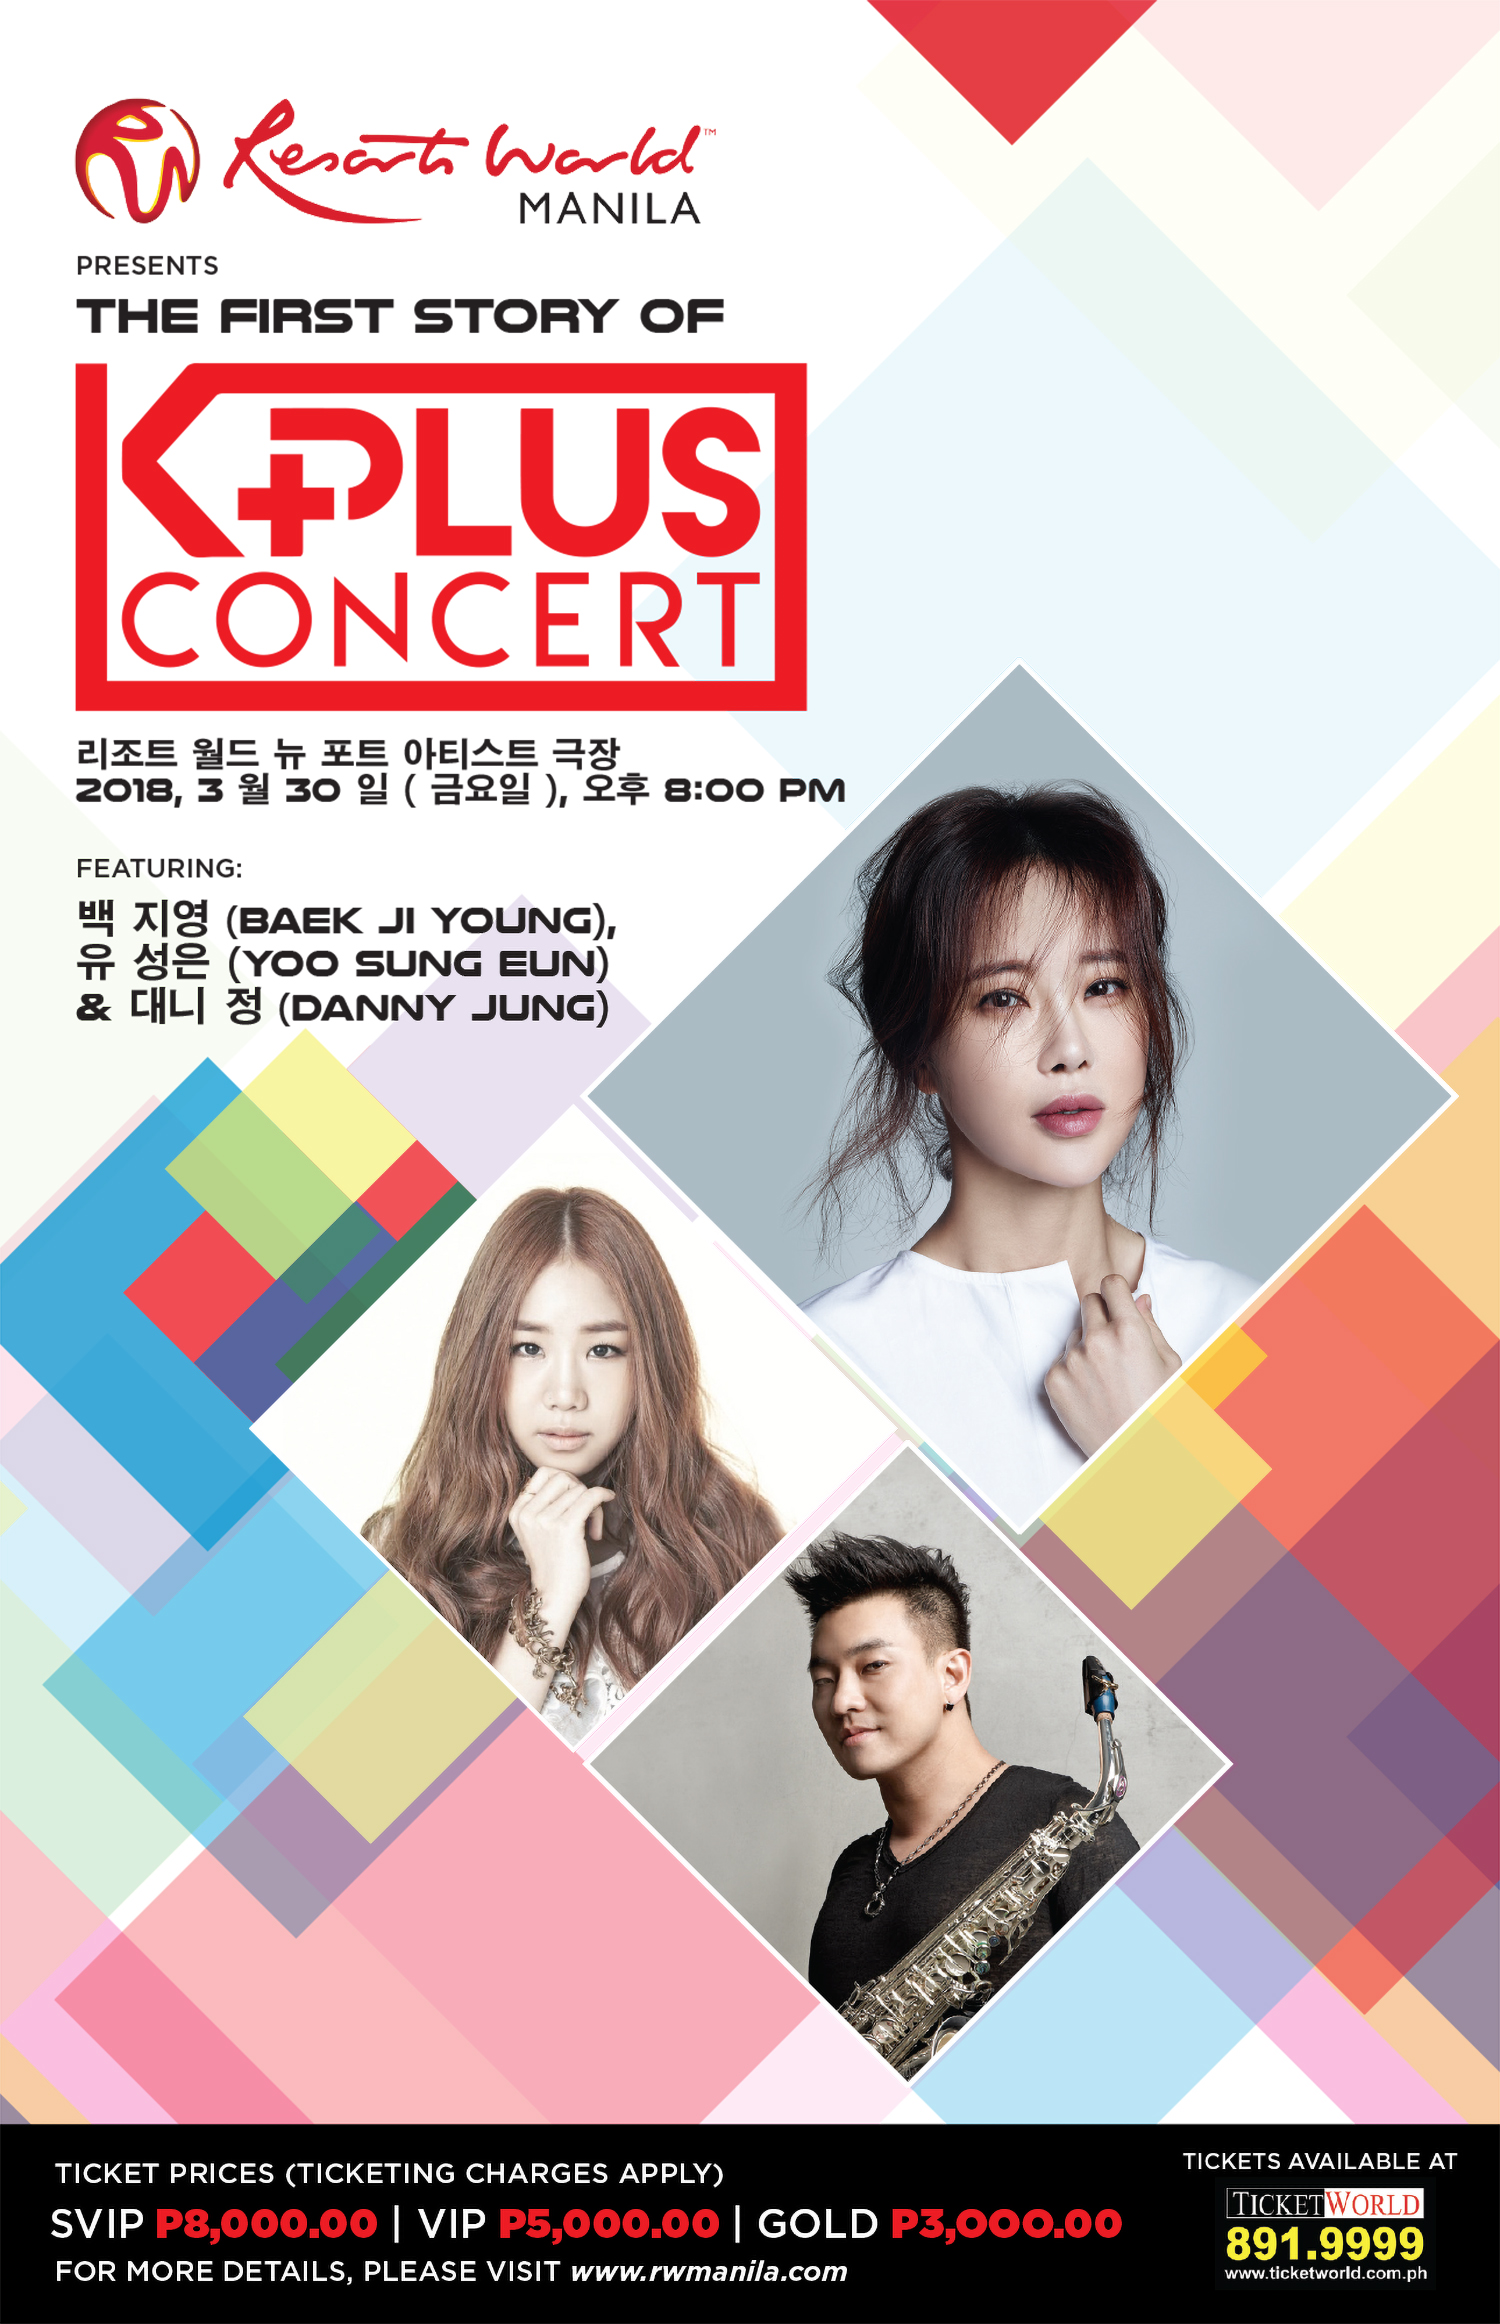 The First Story of KPlus Concert